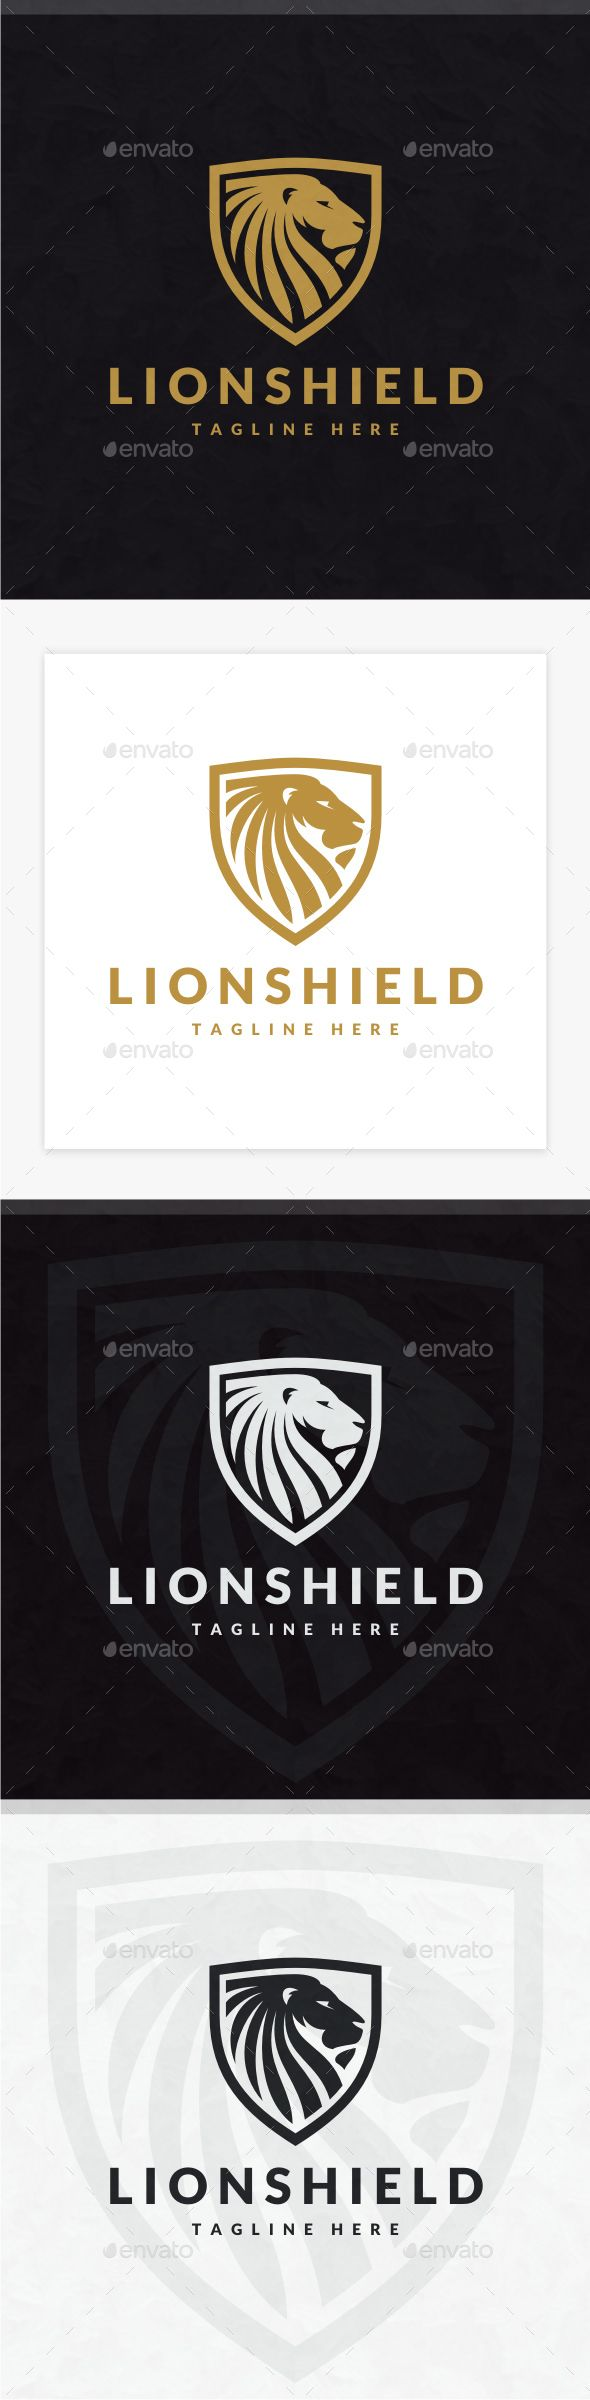 Lion Shield Logo — Photoshop PSD #graphic #creative • Download ➝ https://graphicriver.net/item/lion-shield-logo/19722927?ref=pxcr